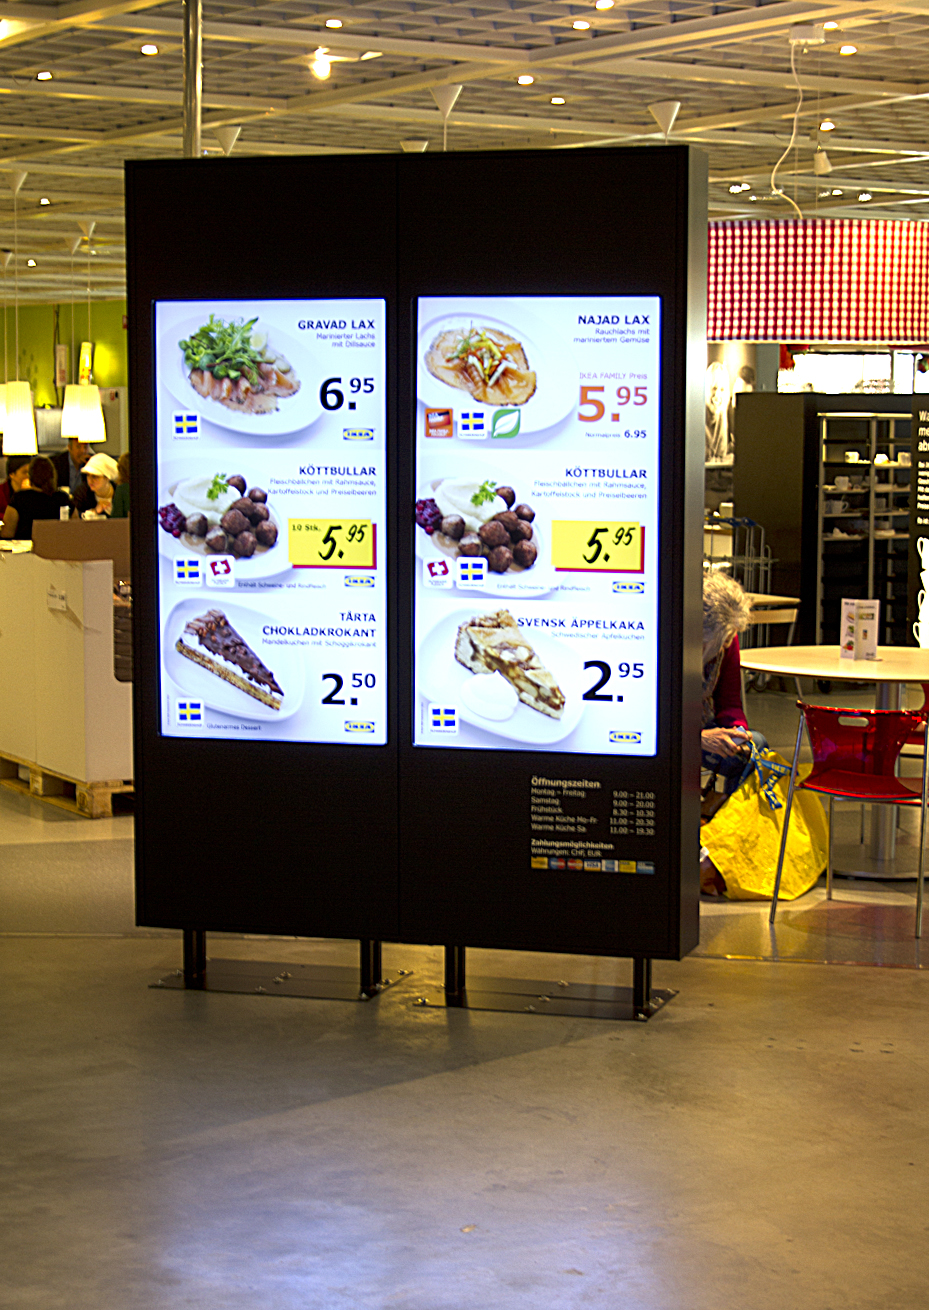 ikea switzerland deploys scala software to enhance customer experience scala digital signage. Black Bedroom Furniture Sets. Home Design Ideas